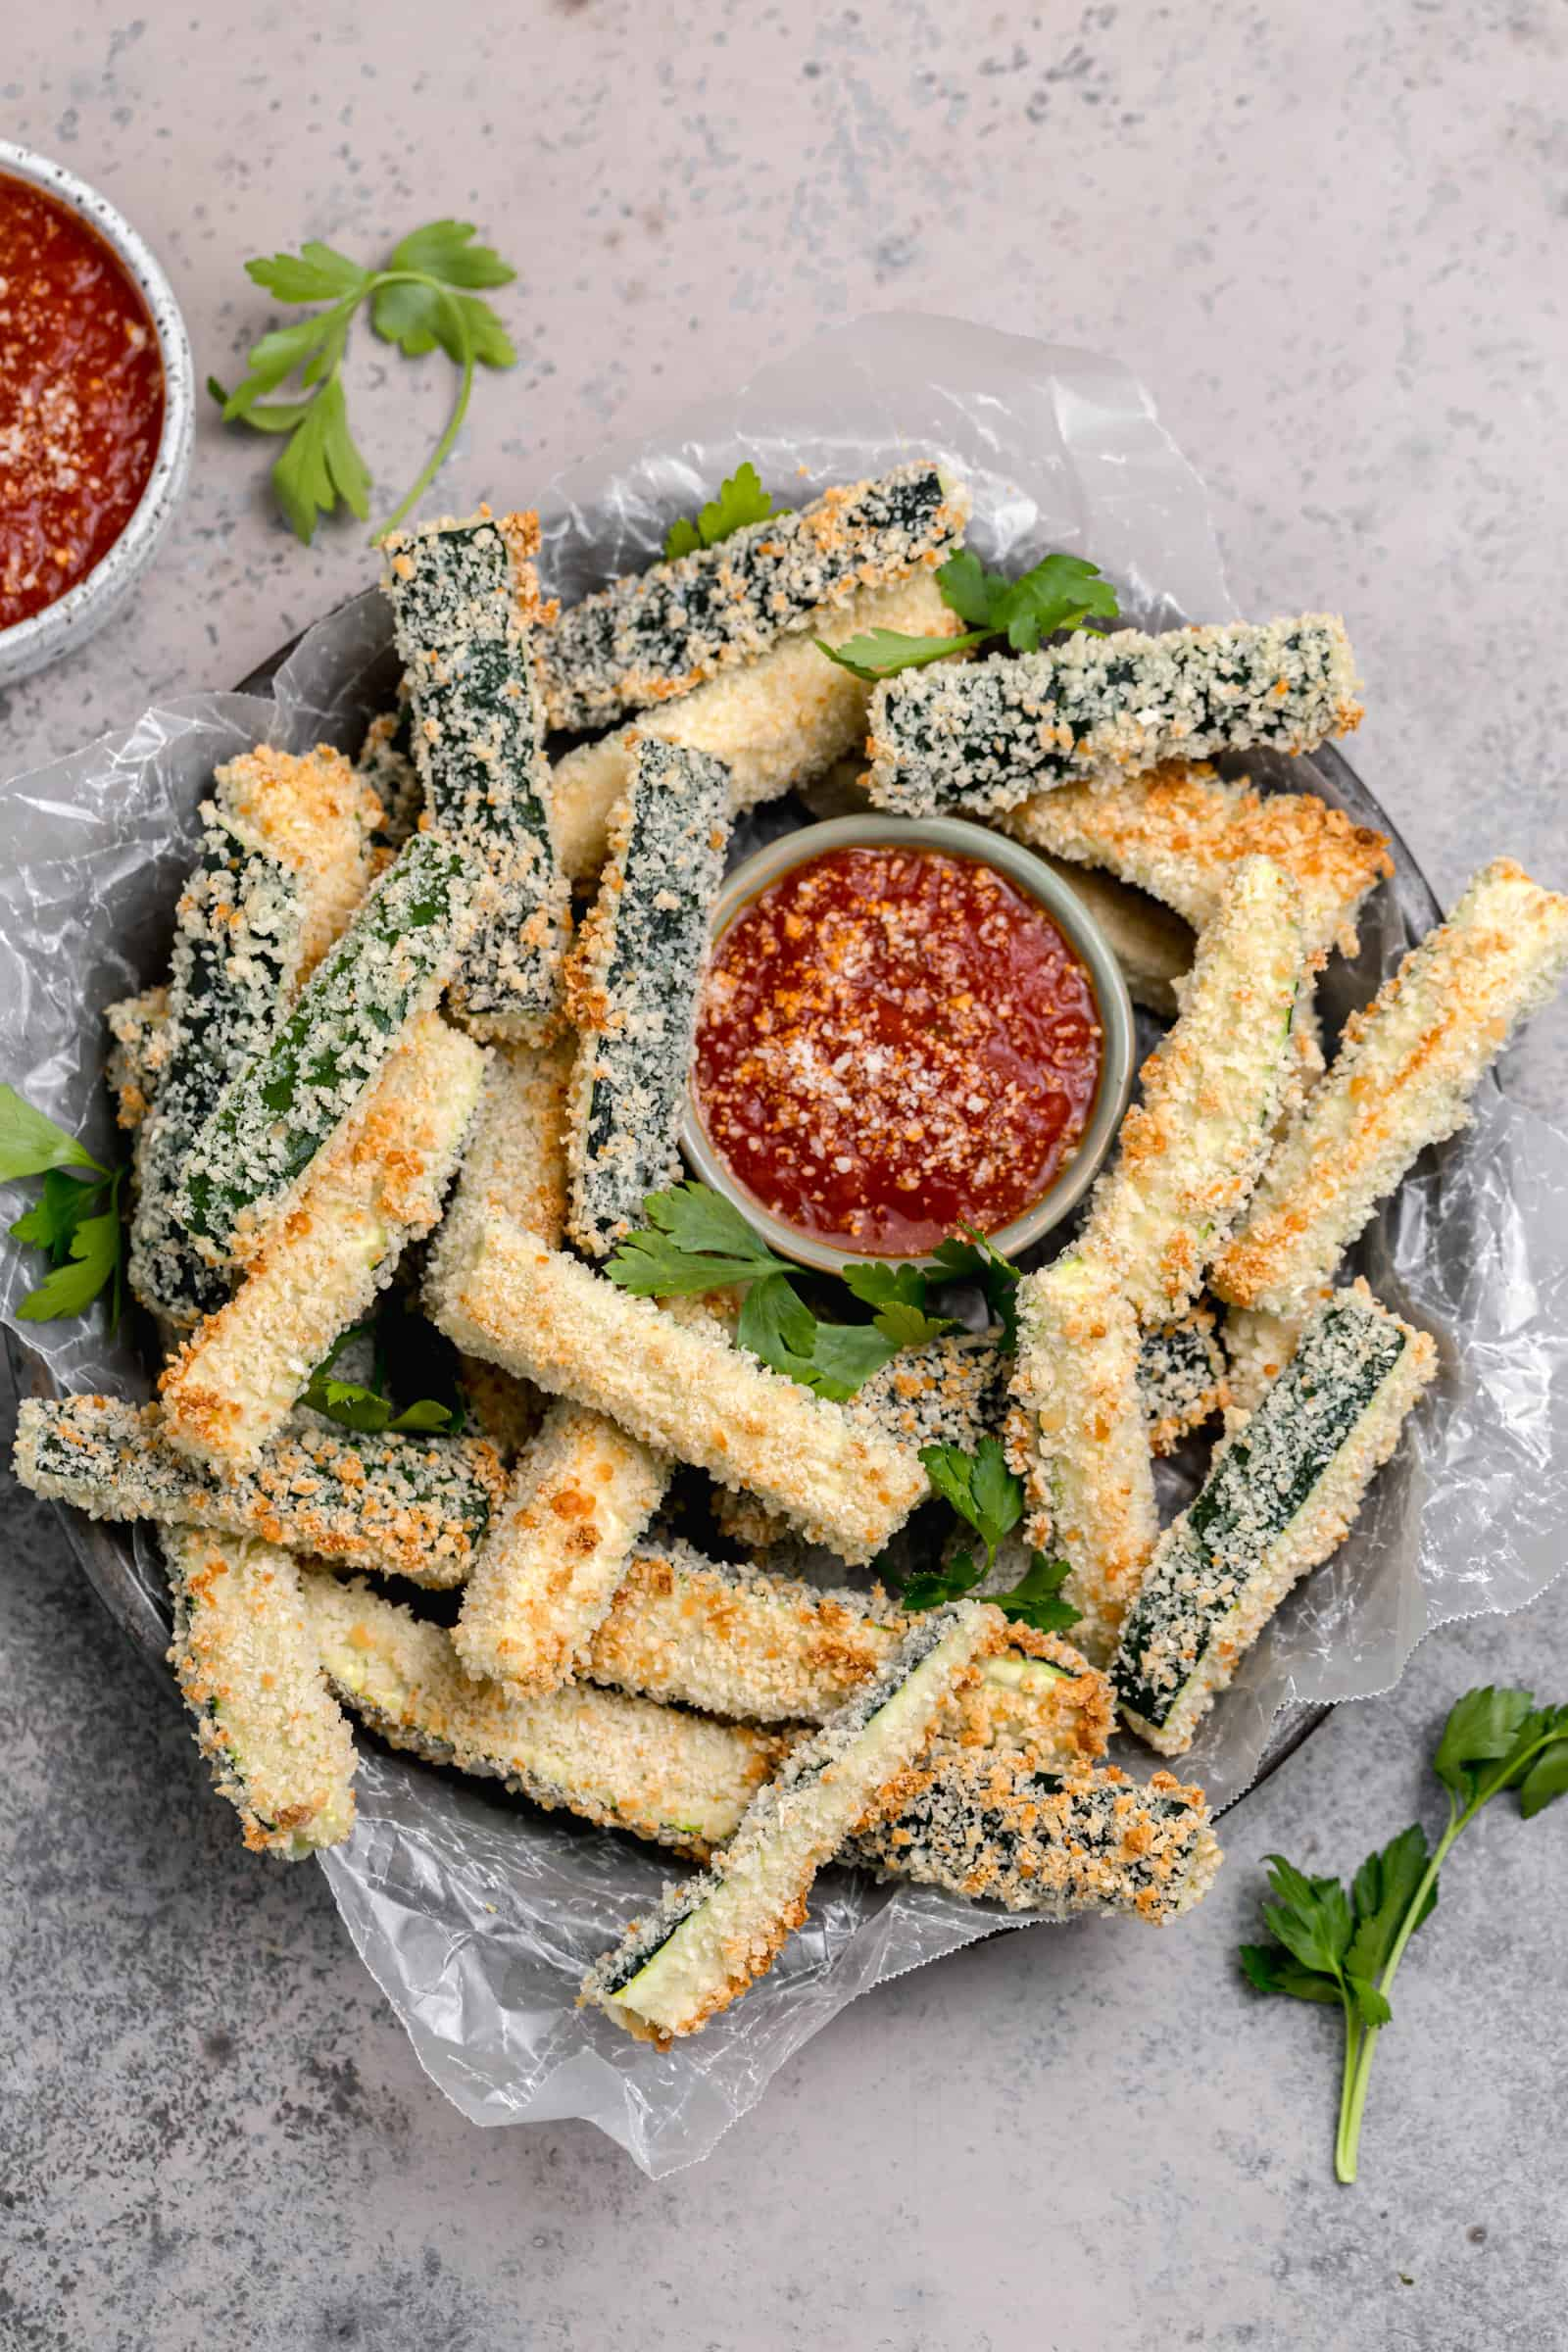 baked zucchini fries with panko breadcrumbs on a tray with marinara sauce